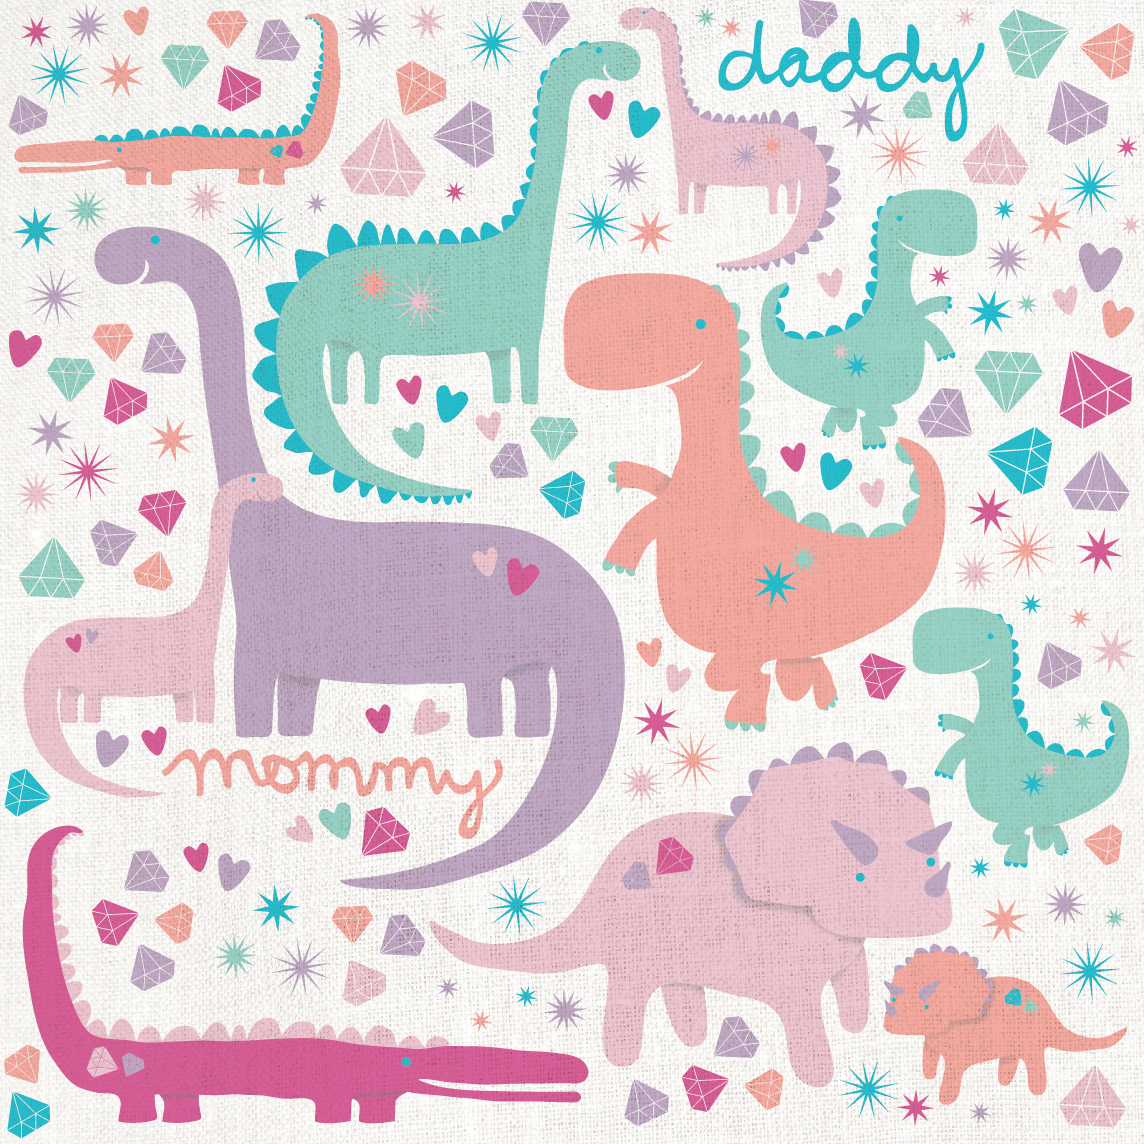 Mommy, Daddy & baby dinosaurs, shut up! I never find anything girlie with dinosaurs and my daughter LOVES them! This is just for her. Rrrrrroooooooaaaaaarrrrrrrrr!